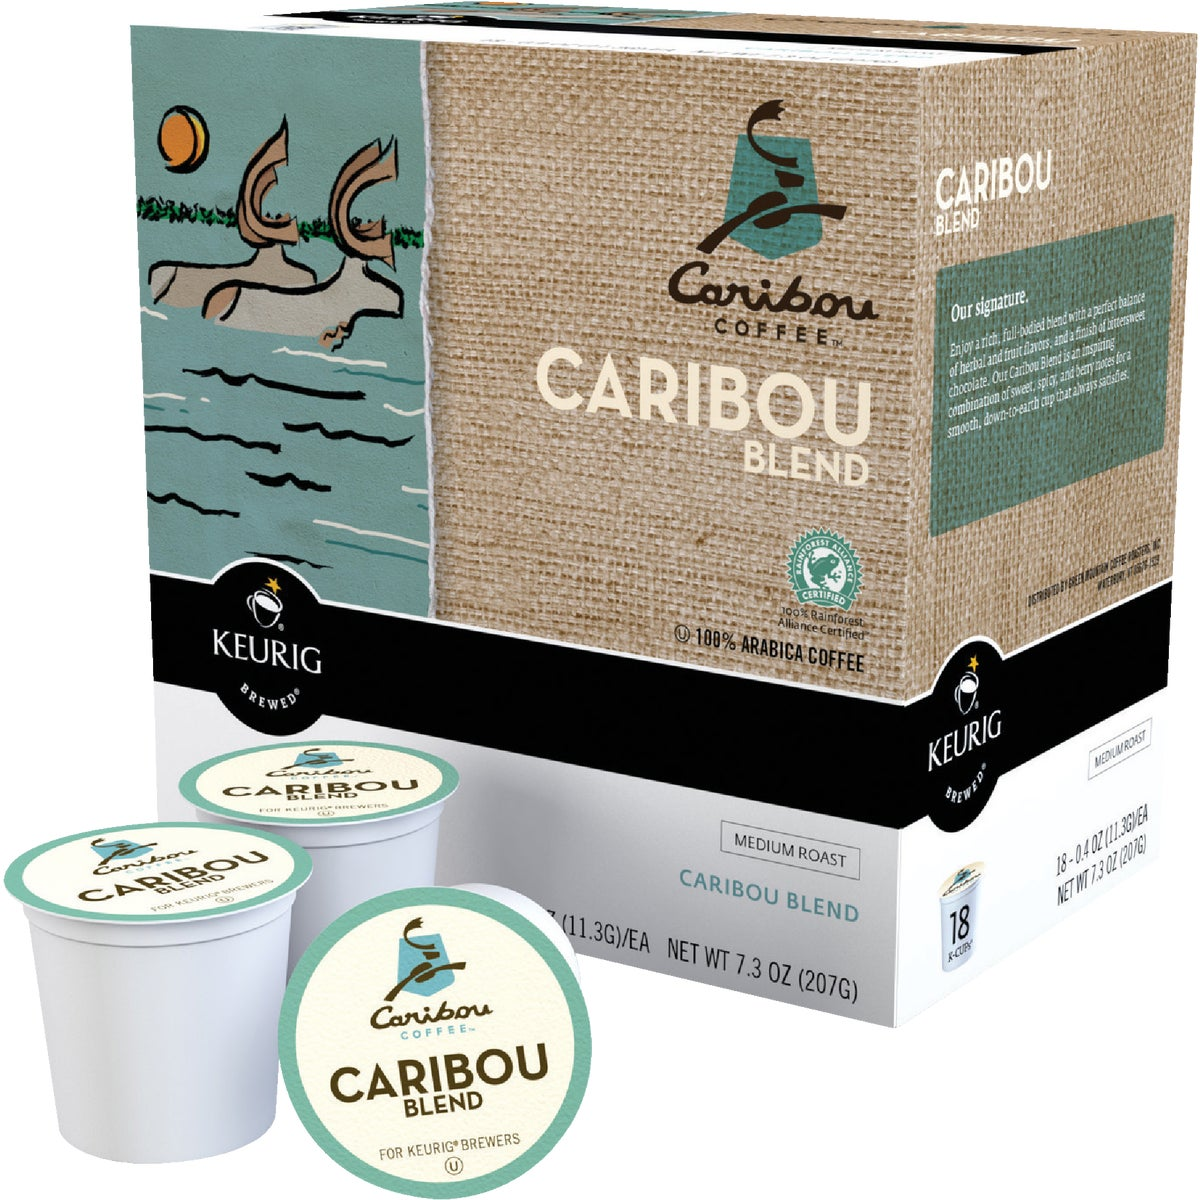 K-CUP CARIBOU COFFEE - 00992 by Keurig     M Block